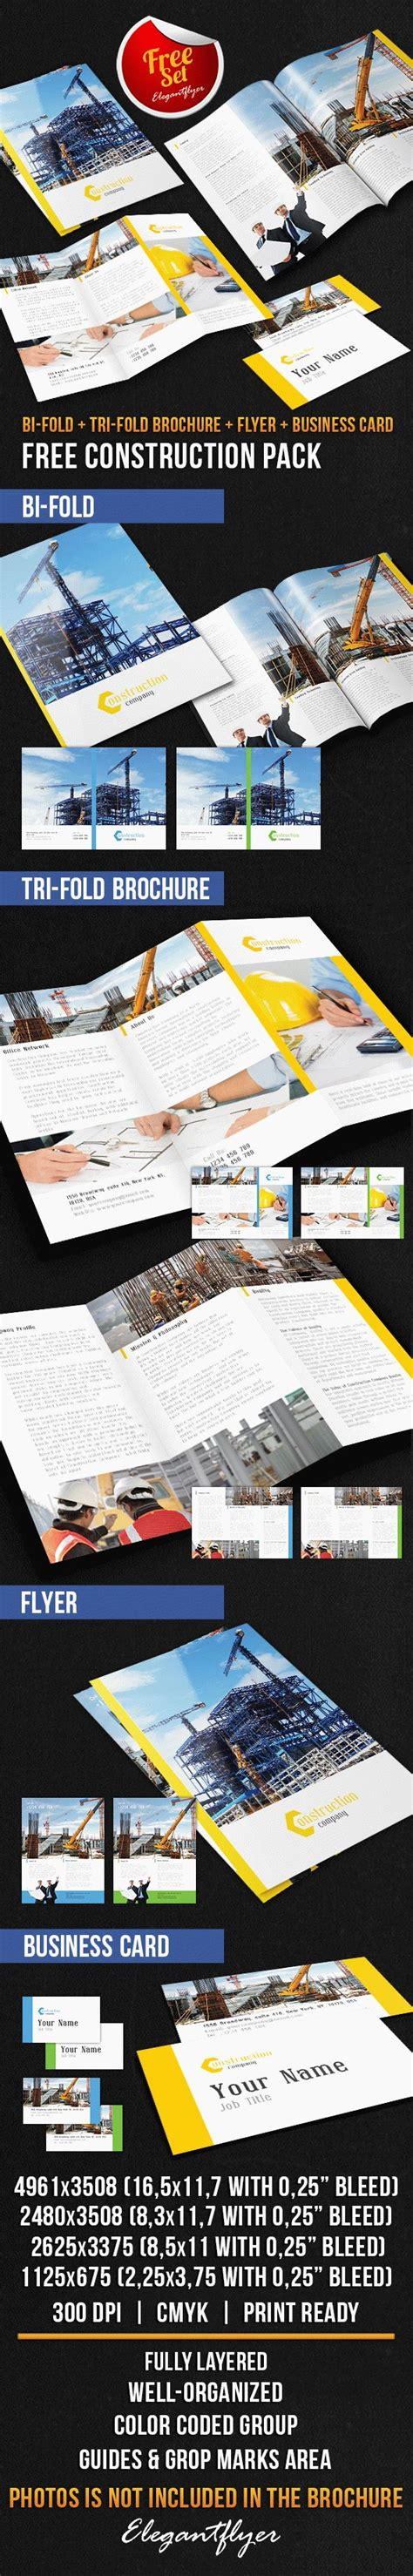 Construction Brochure Template by Construction Brochure Pack Free Psd Template By